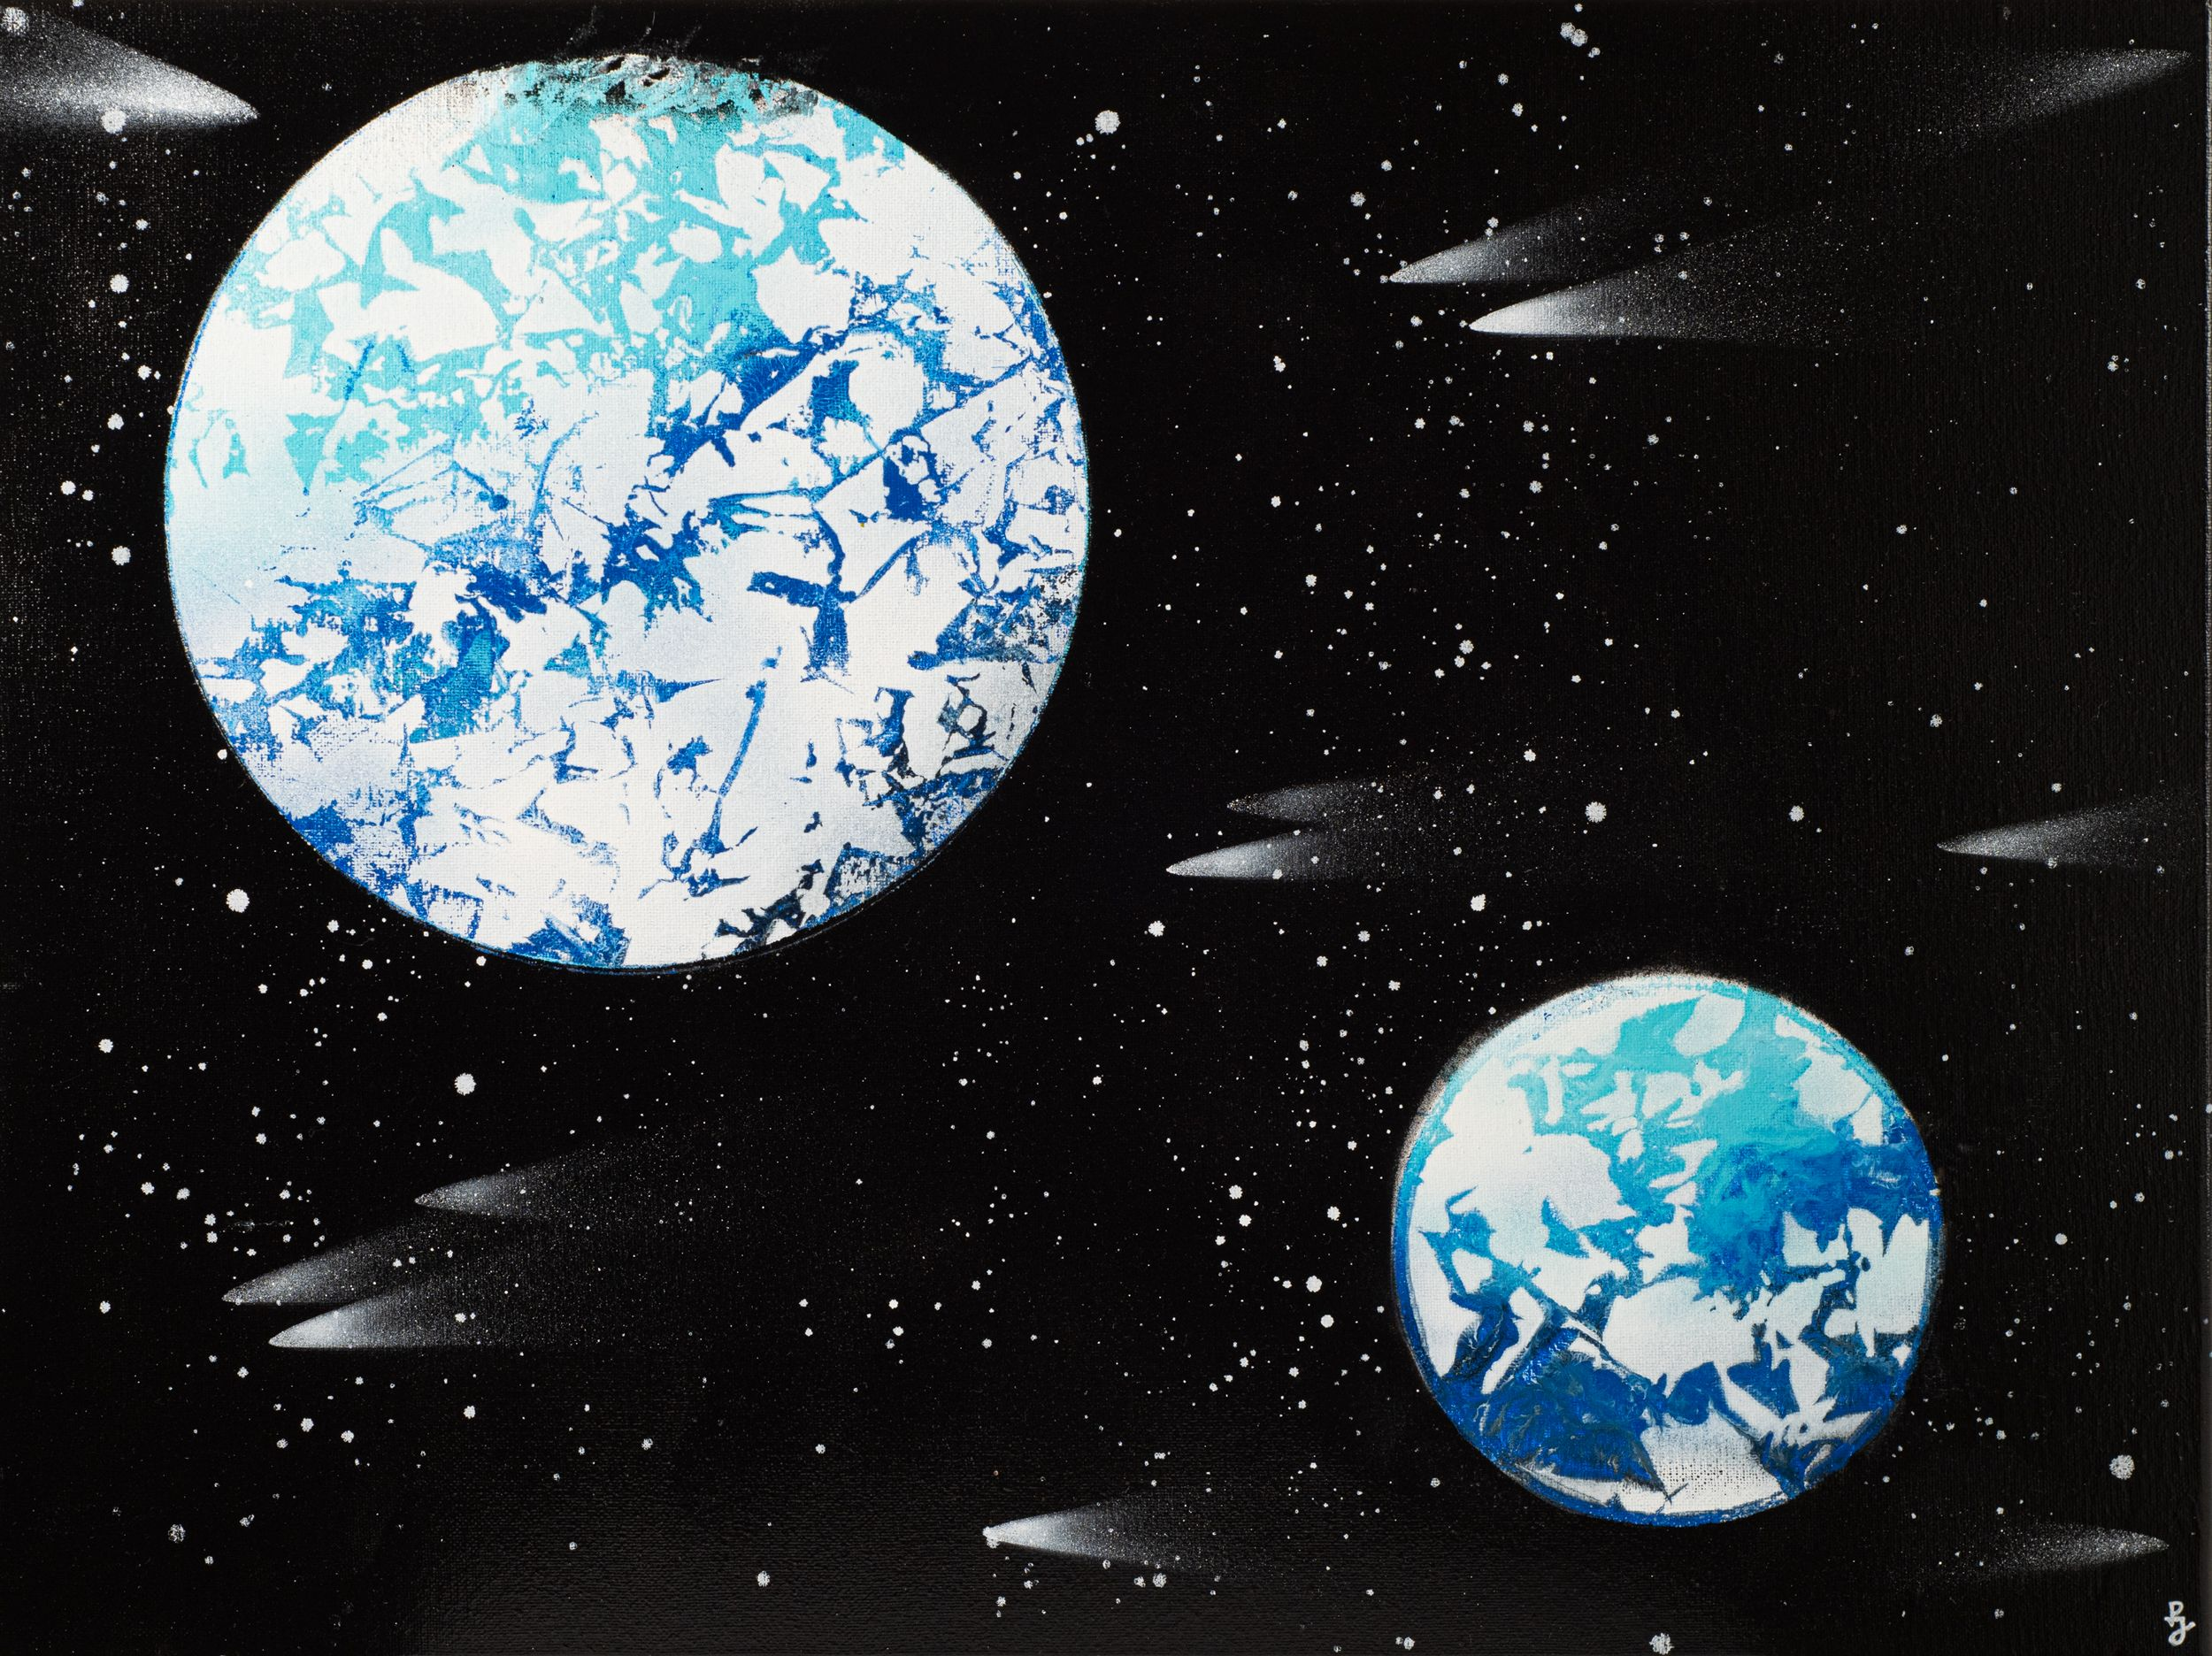 """Exoplanets"" - Piper Acteson"